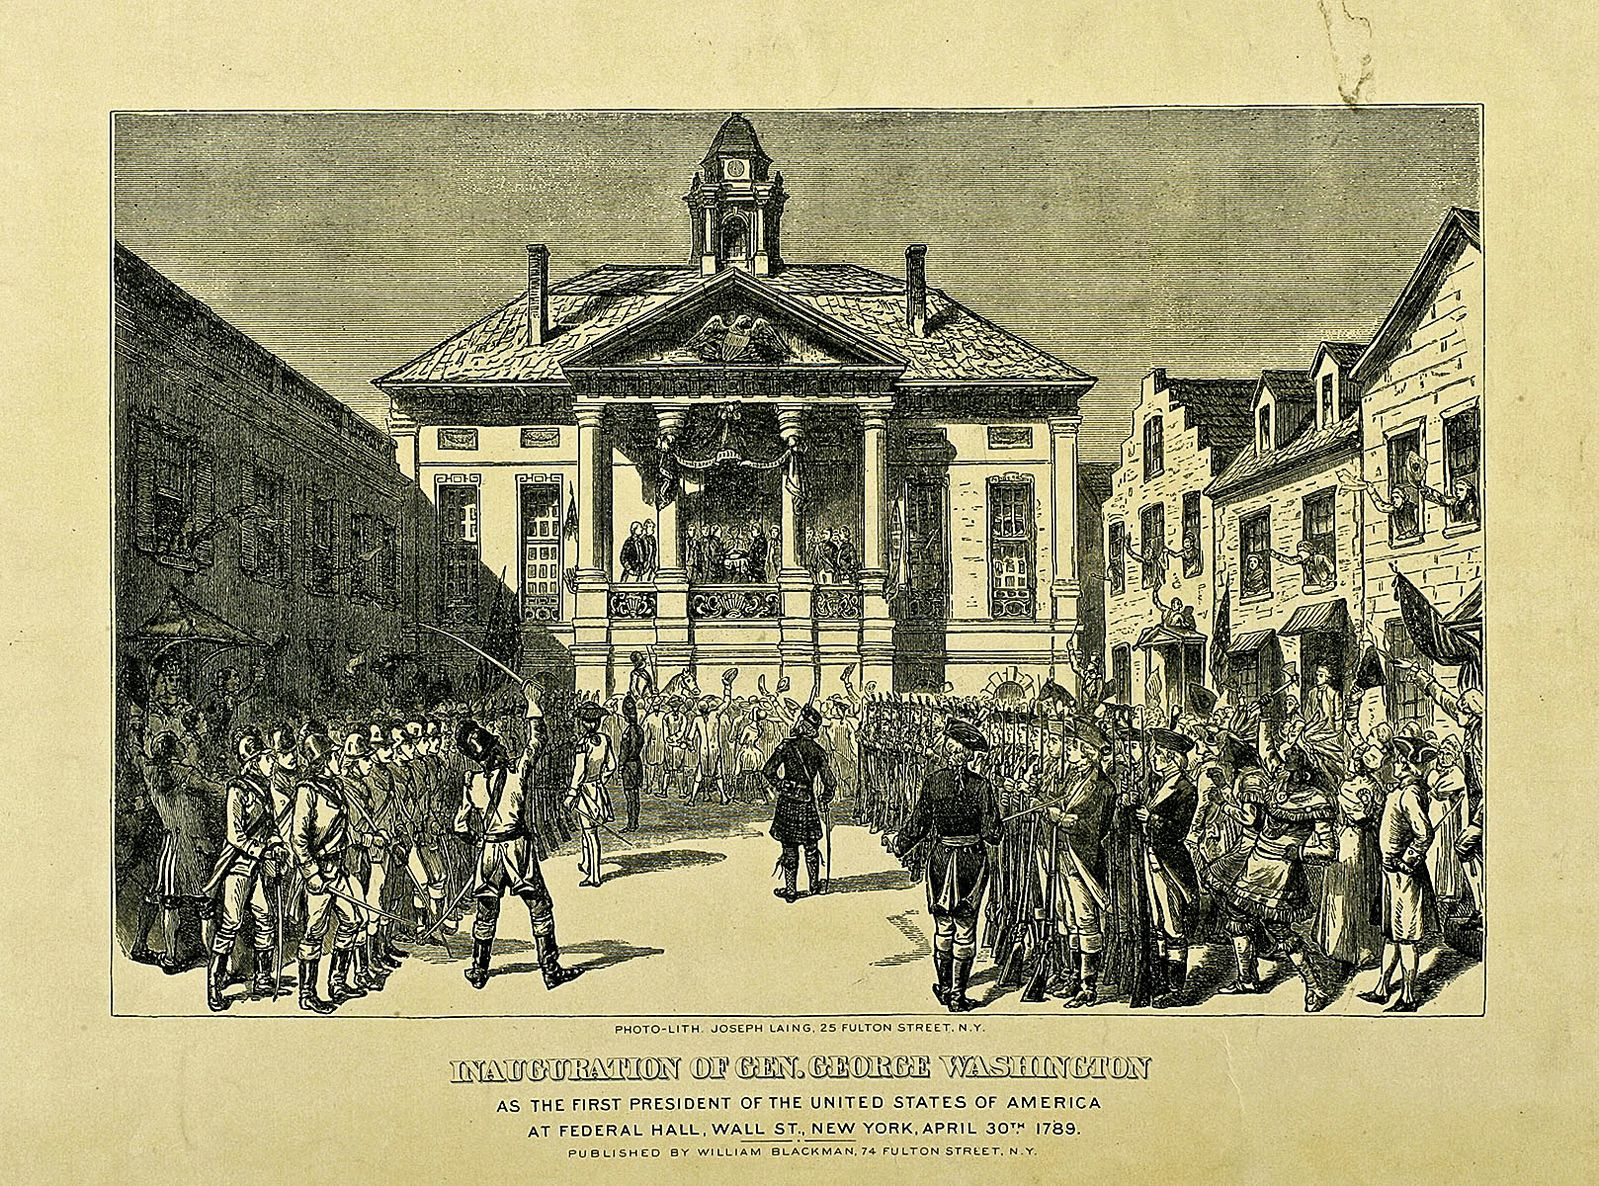 Inauguration of George Washington